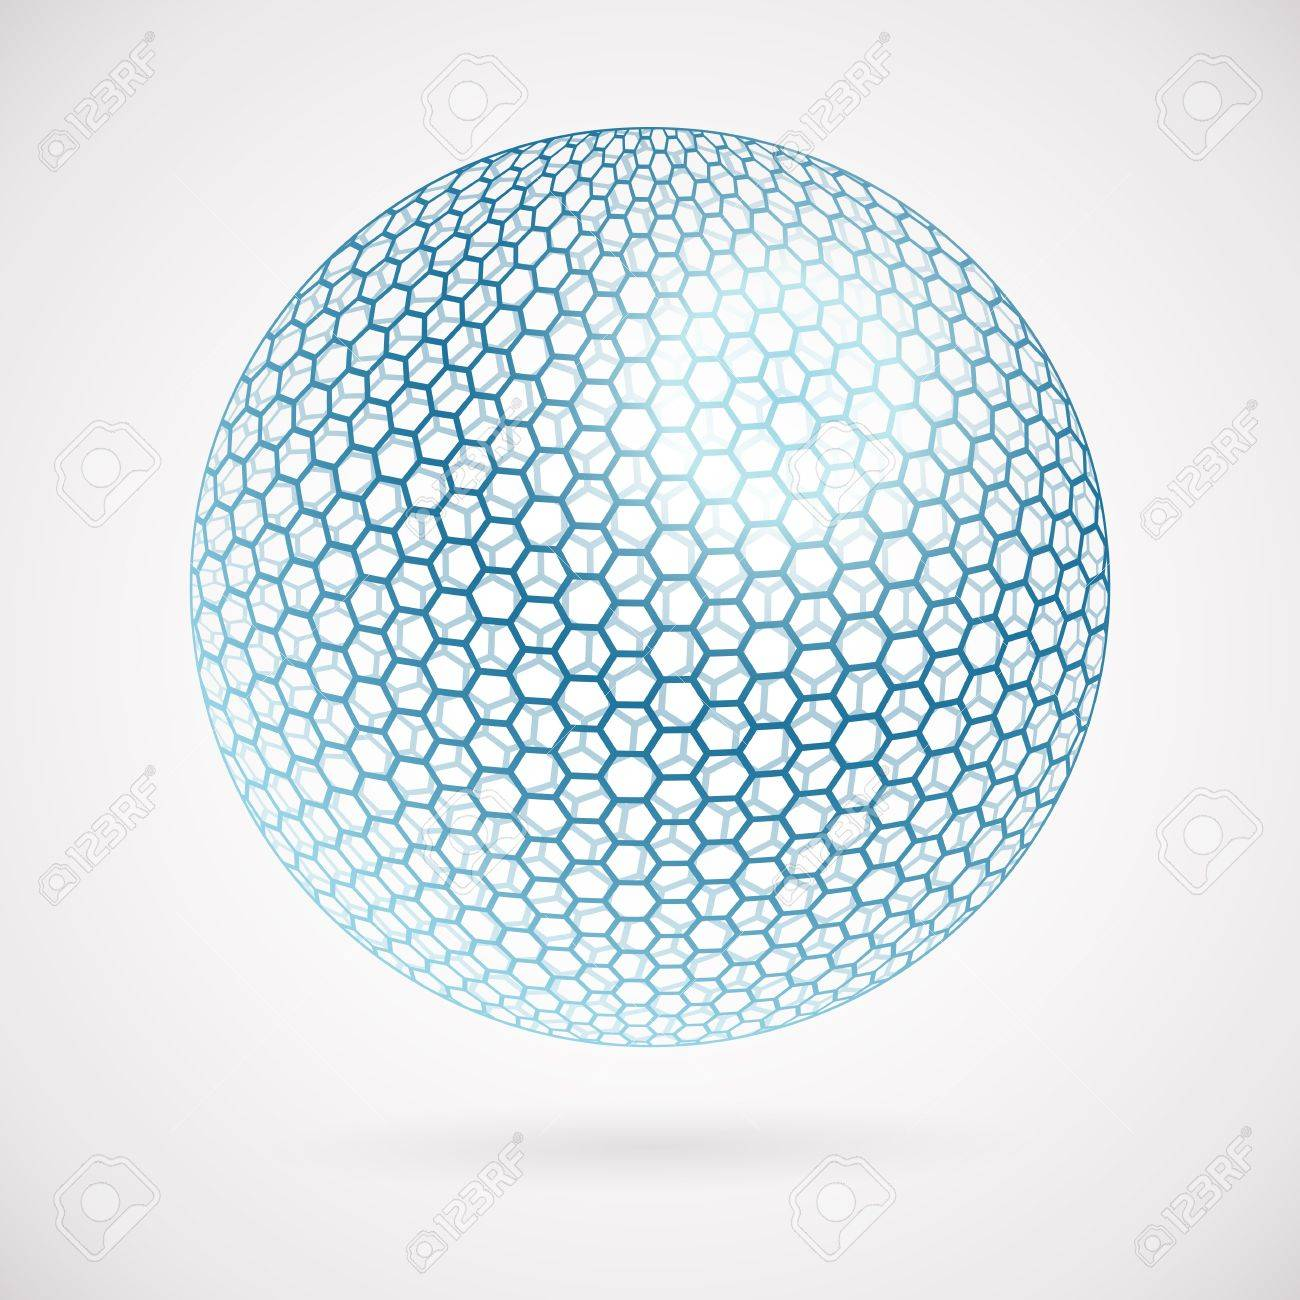 abstract sphere of hexagons. vector background royalty free cliparts,  vectors, and stock illustration. image 17660089.  123rf